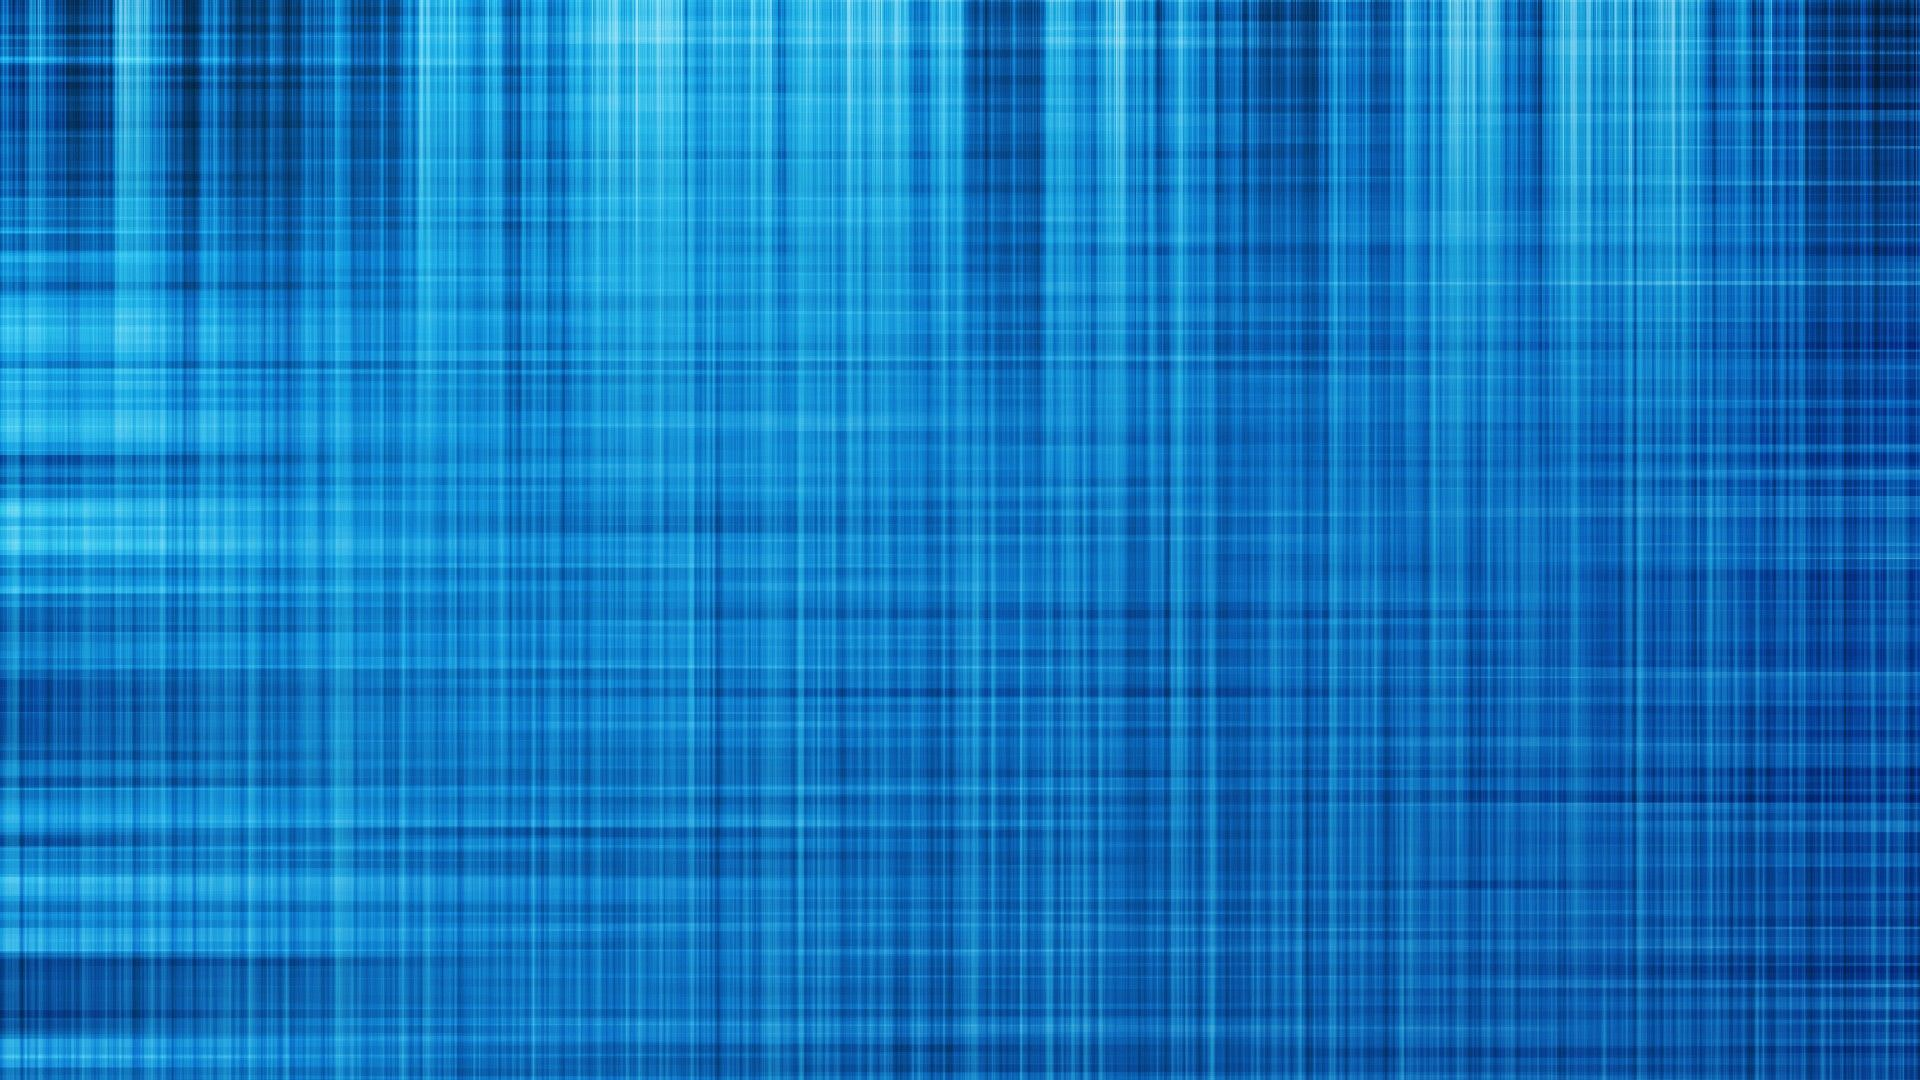 Blue Textured Wallpapers HD Textured wallpaper